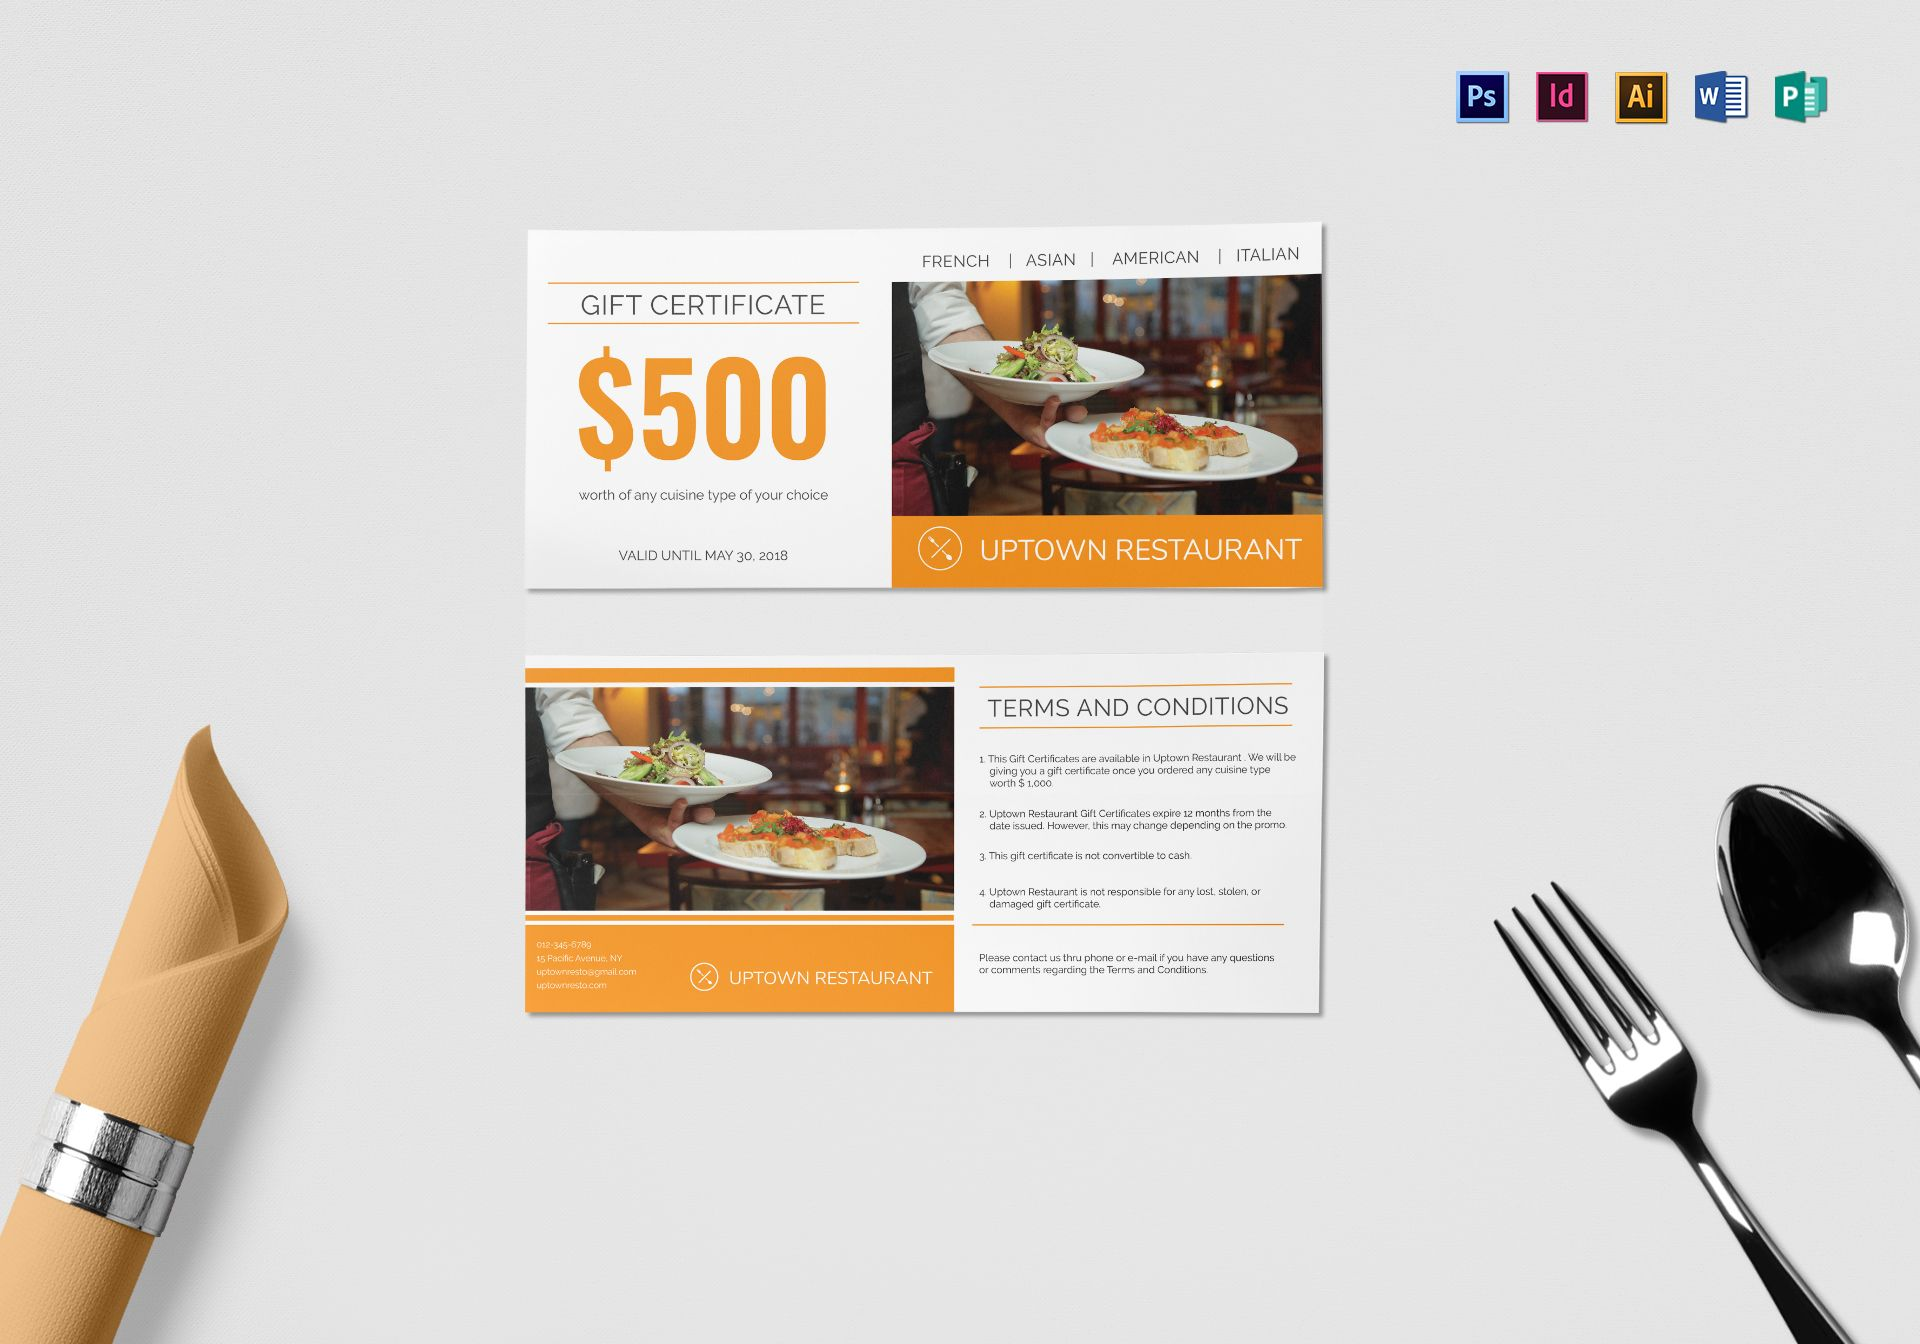 Food gift certificate template choice image templates example food gift certificate template gallery templates example free restaurant gift certificate design template in psd word xflitez Image collections